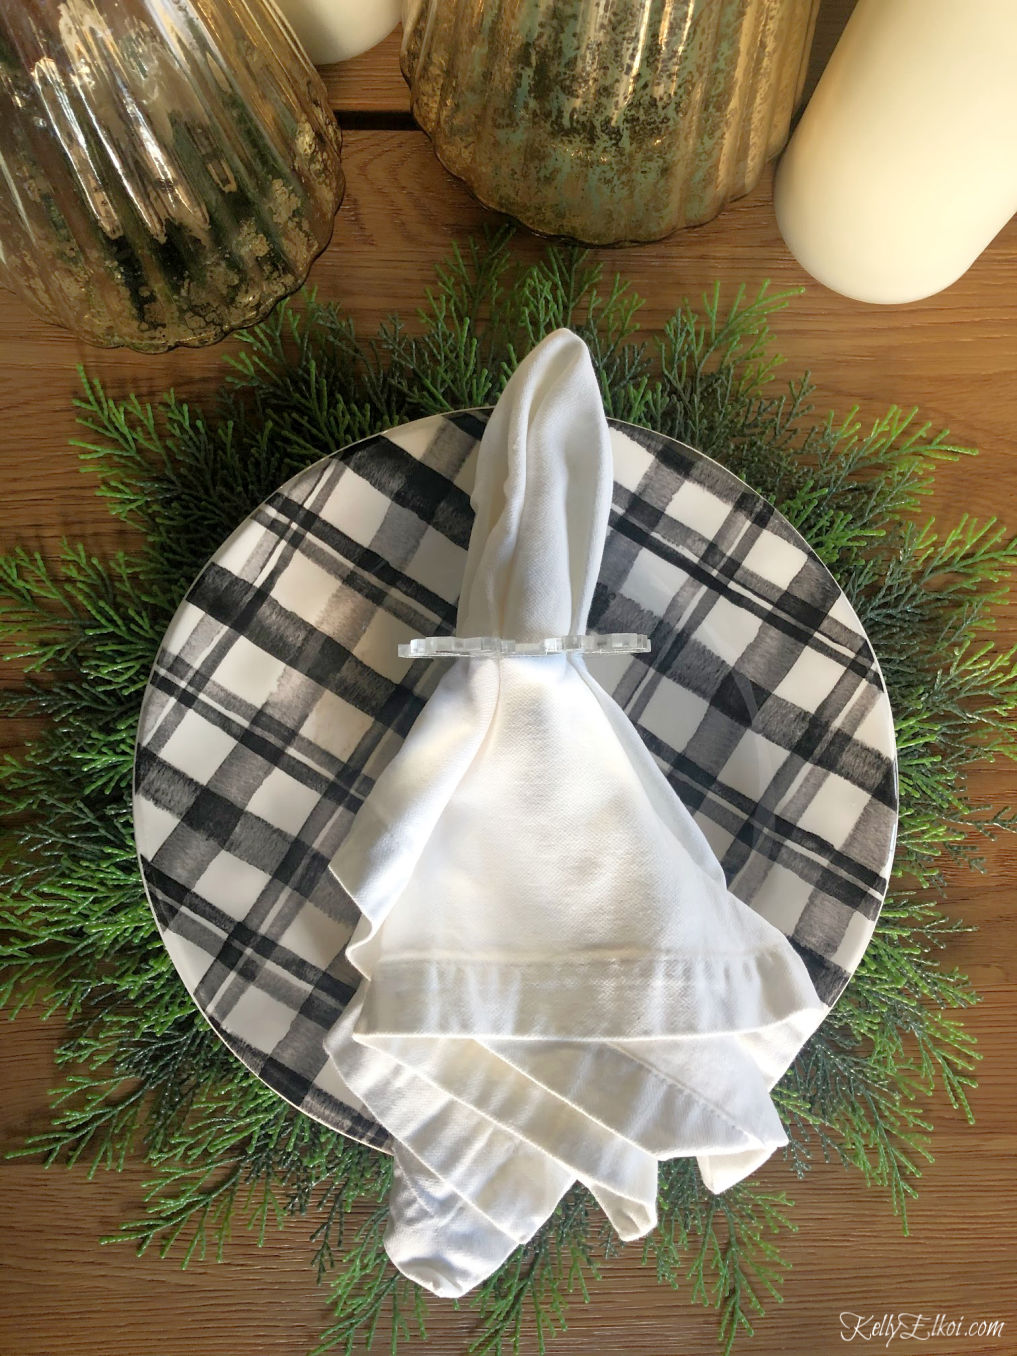 Love this beautiful table setting with black and white plaid plates on a cedar placemat - perfect for Christmas kellyelko.com #christmas #christmastable #christmasdecor #plaid #kellyelko